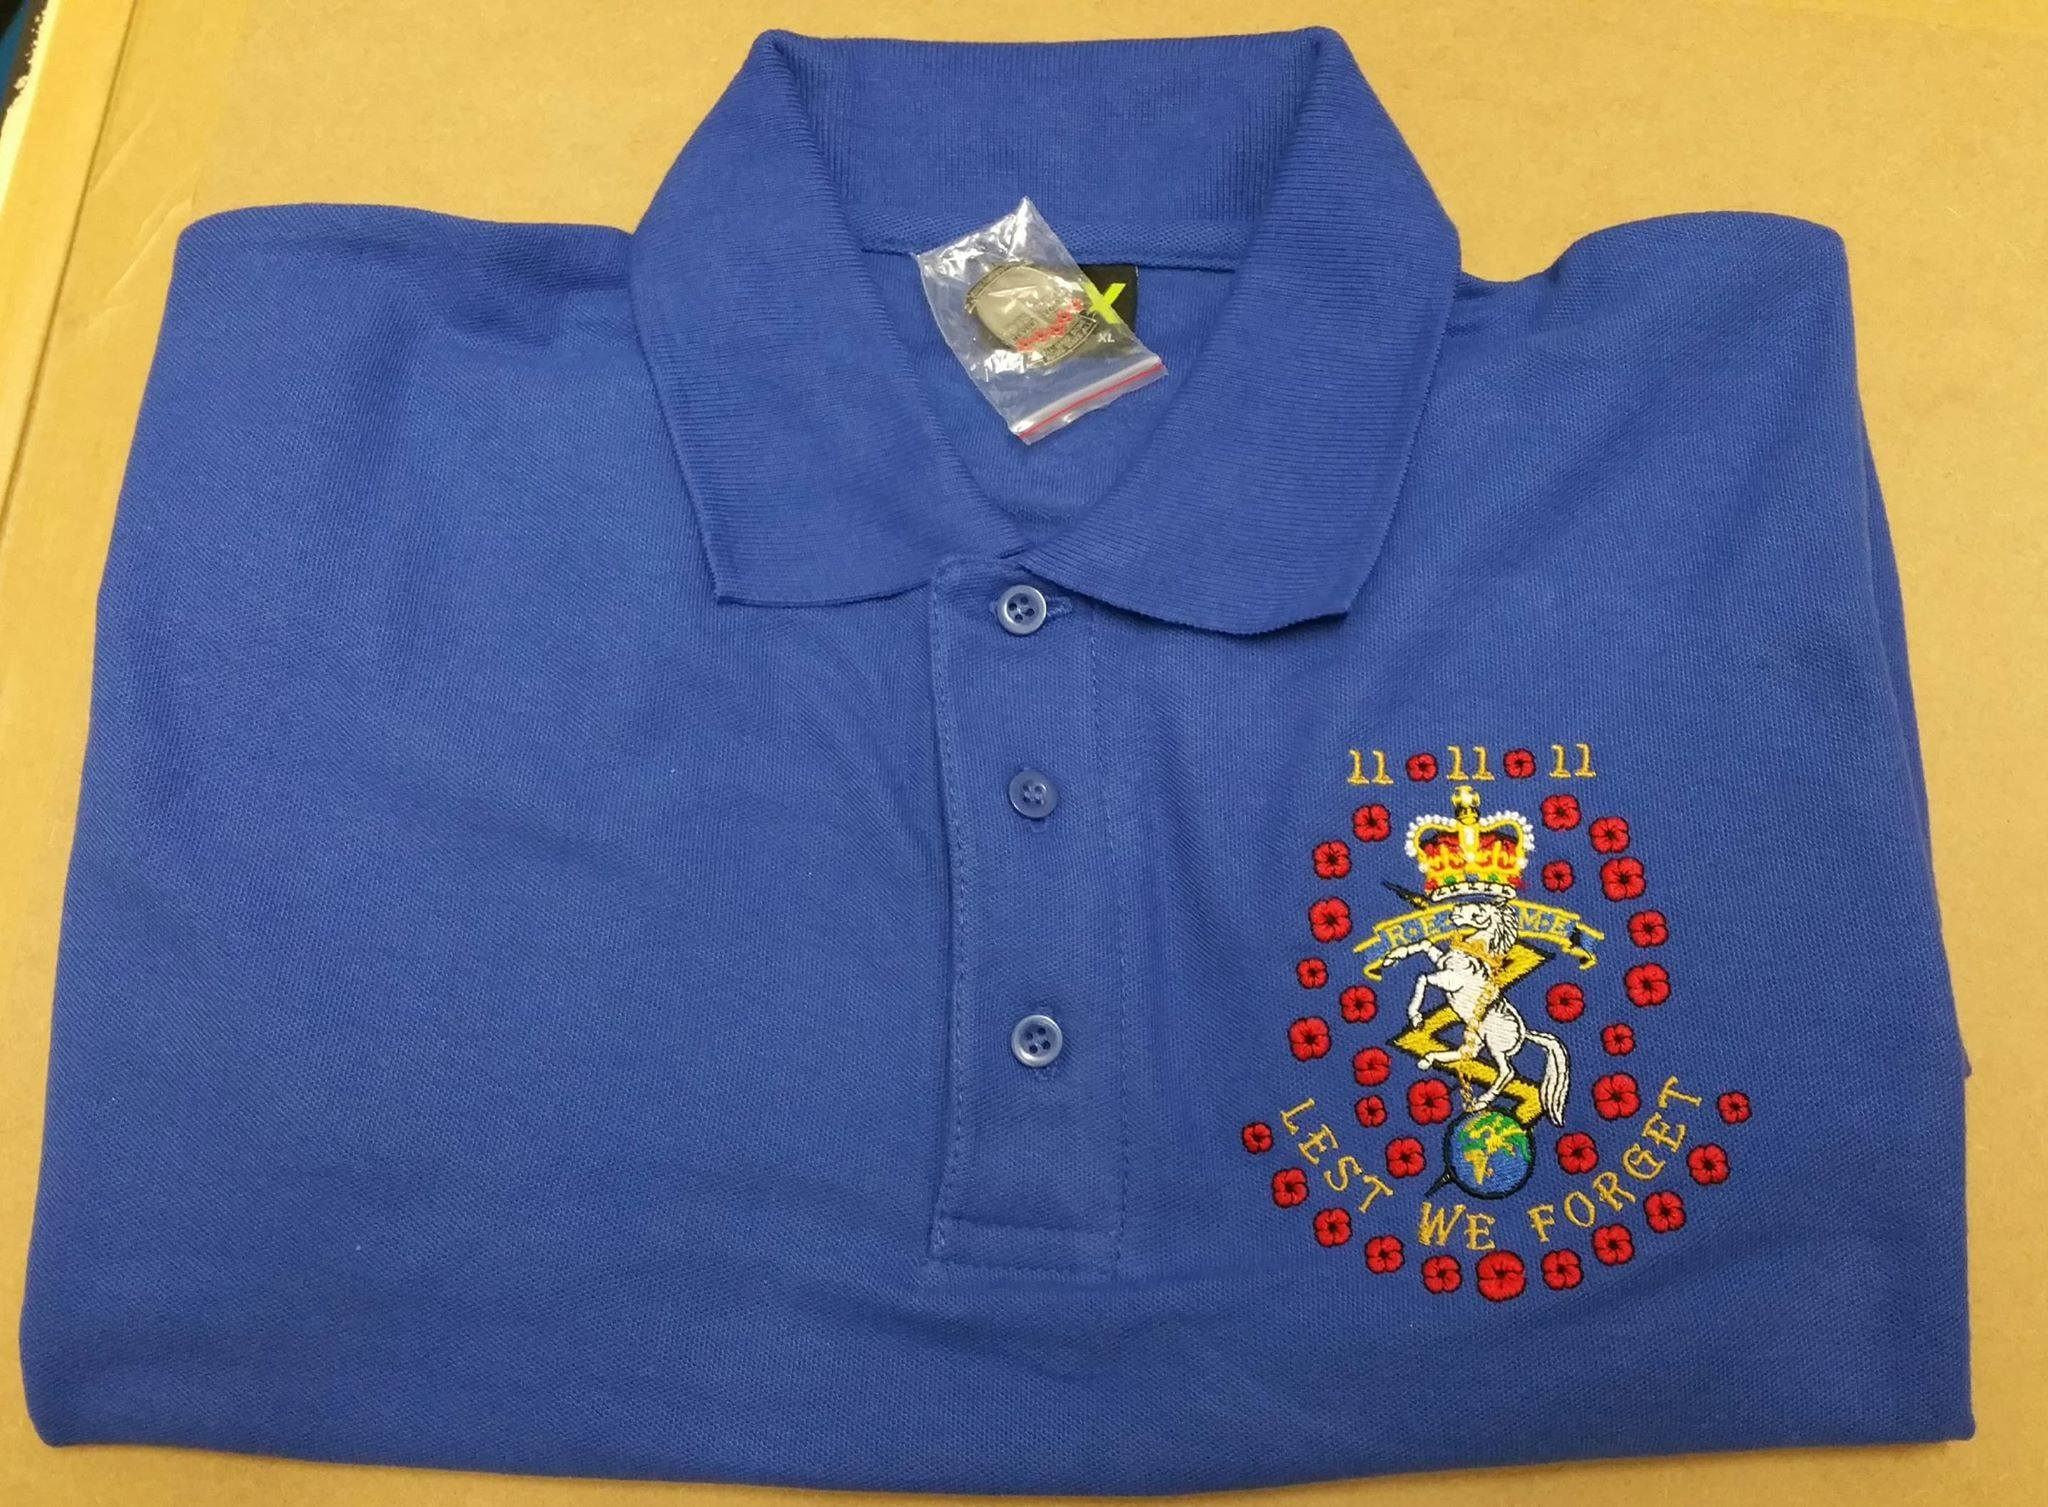 33010dc4e5c REME   LEST WE FORGET   POPPY Embroidered polo shirt (inc free 100th  Anniversary Pin badge)